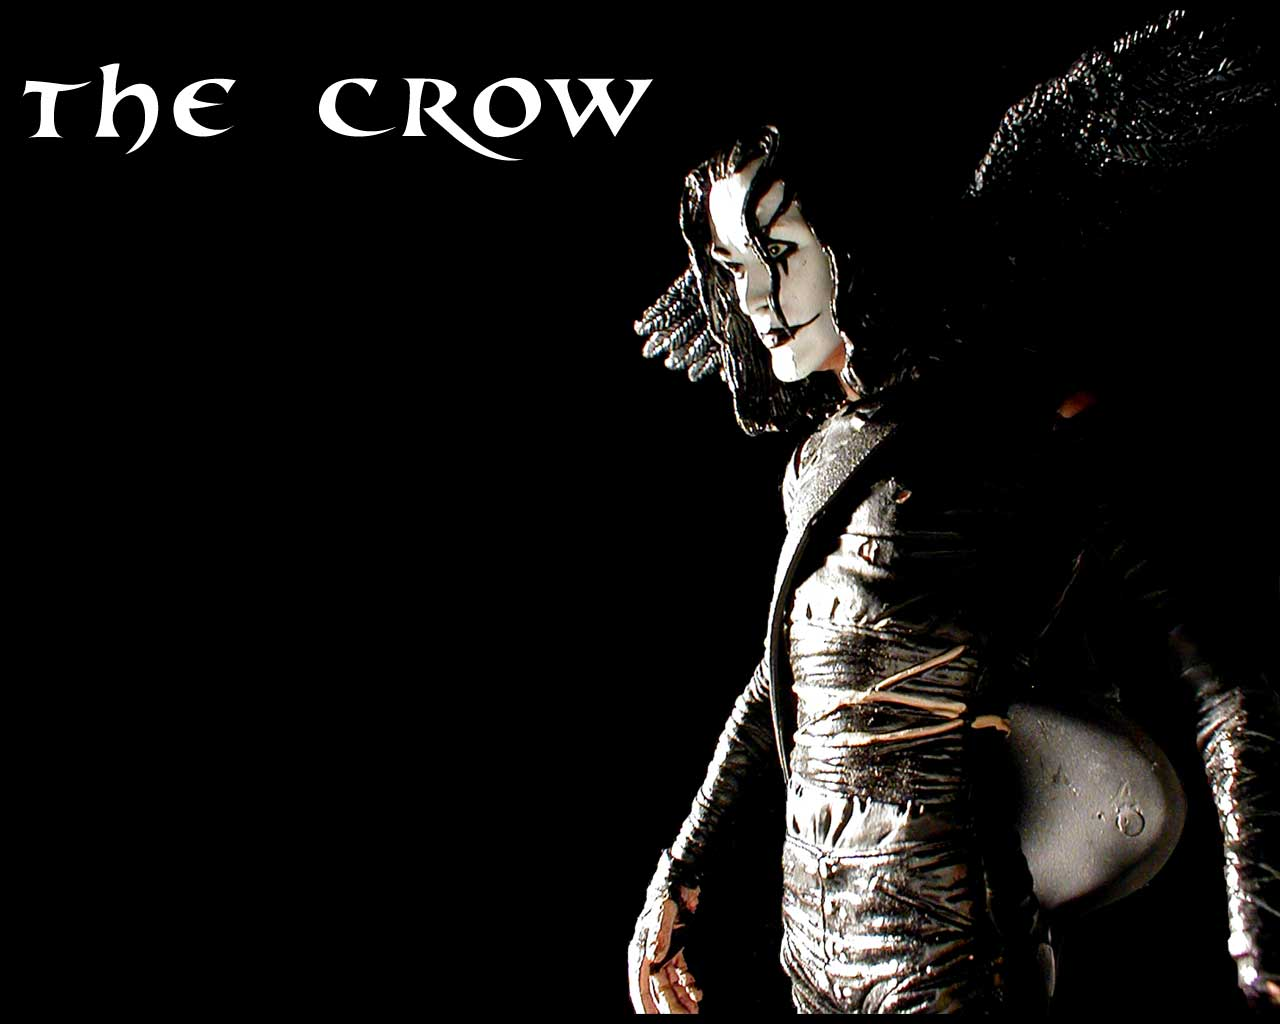 47] The Crow Wallpaper Brandon Lee on WallpaperSafari 1280x1024